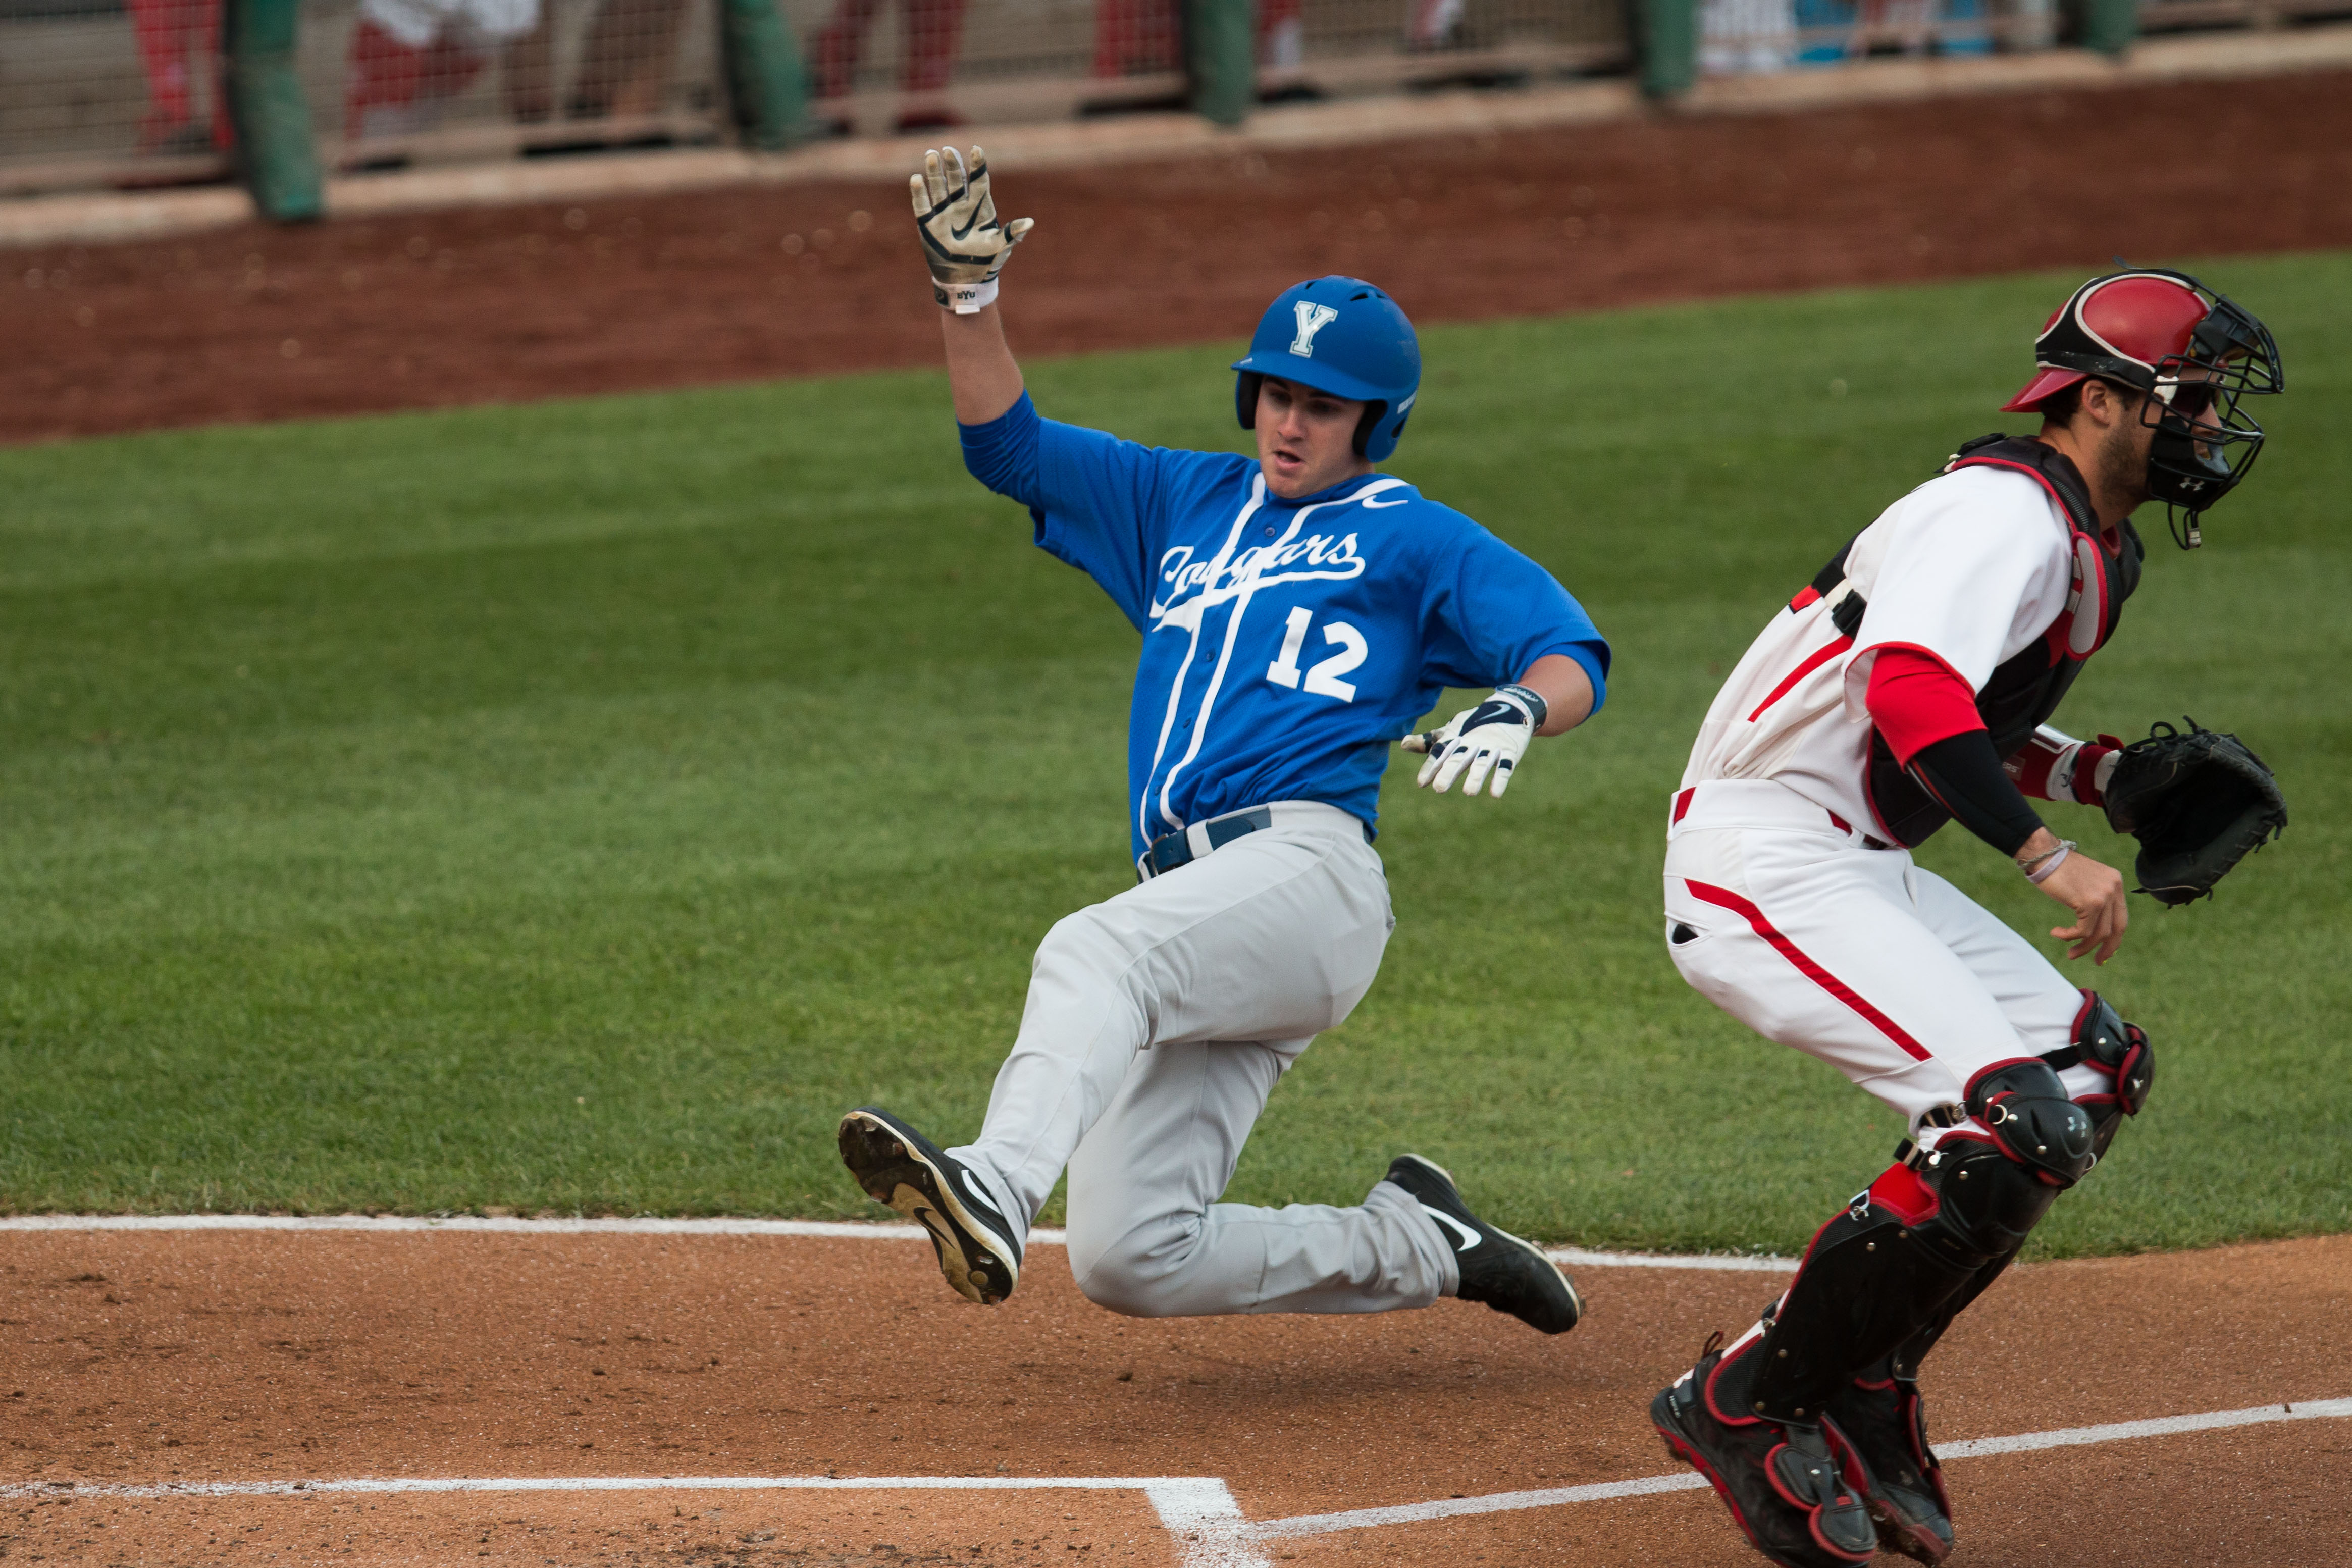 Kelton Caldwell slides into home plate during the game against Utah. Photo by Ari Davis